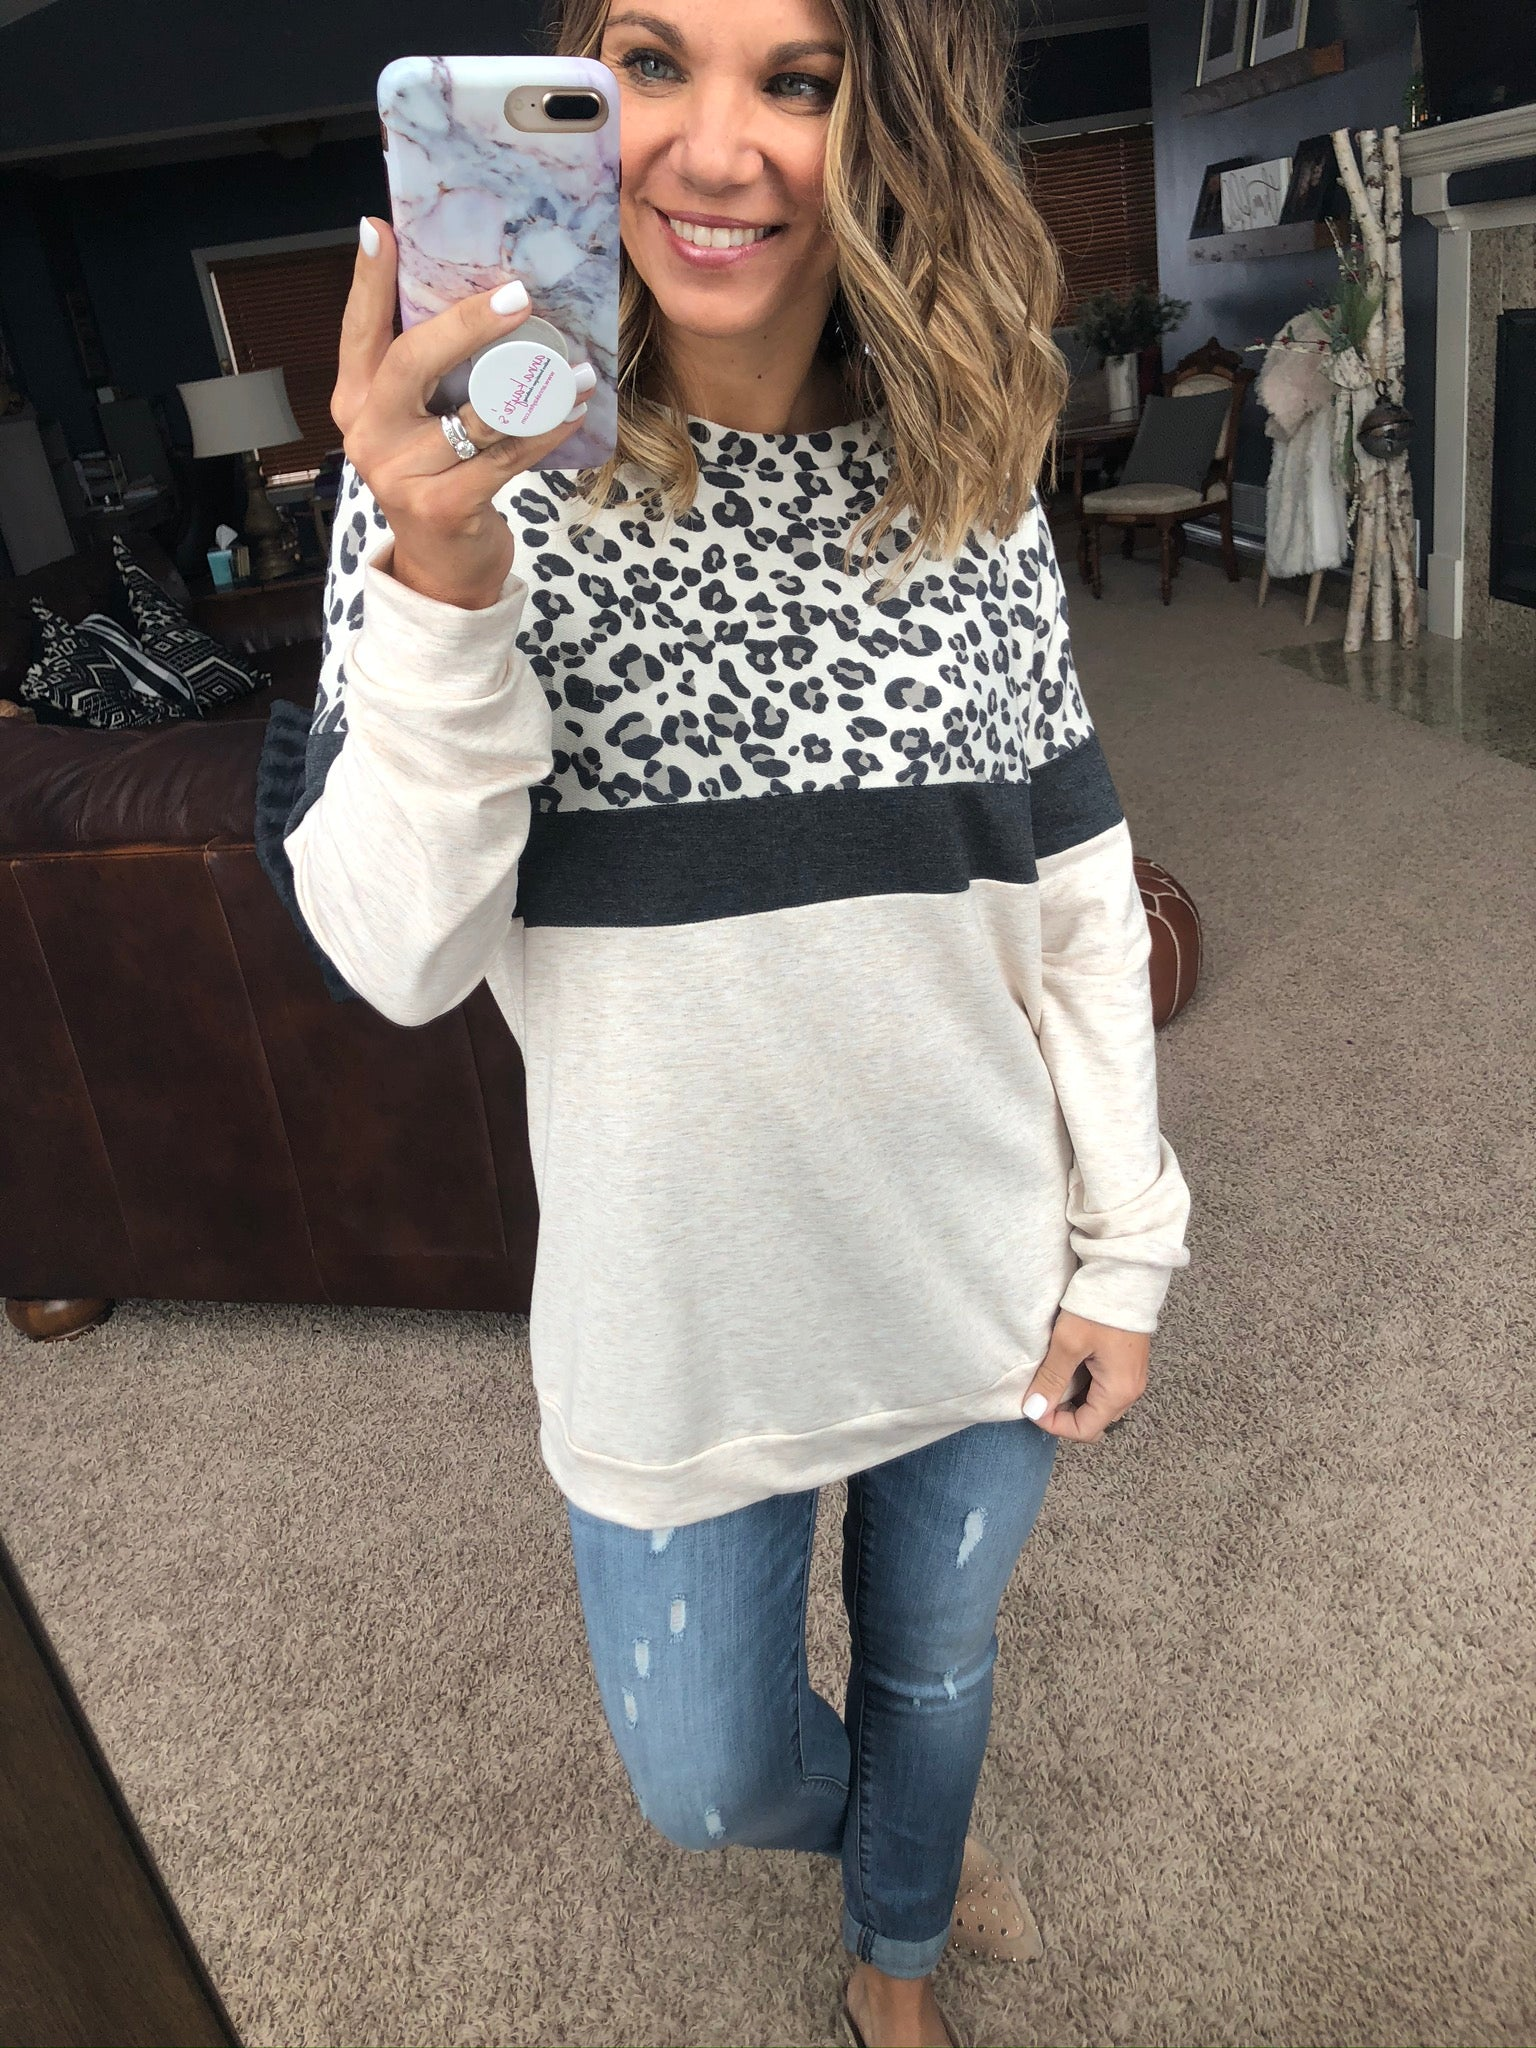 Simon says Leopard, Charcoal and Taupe Color Block Sweatshirt